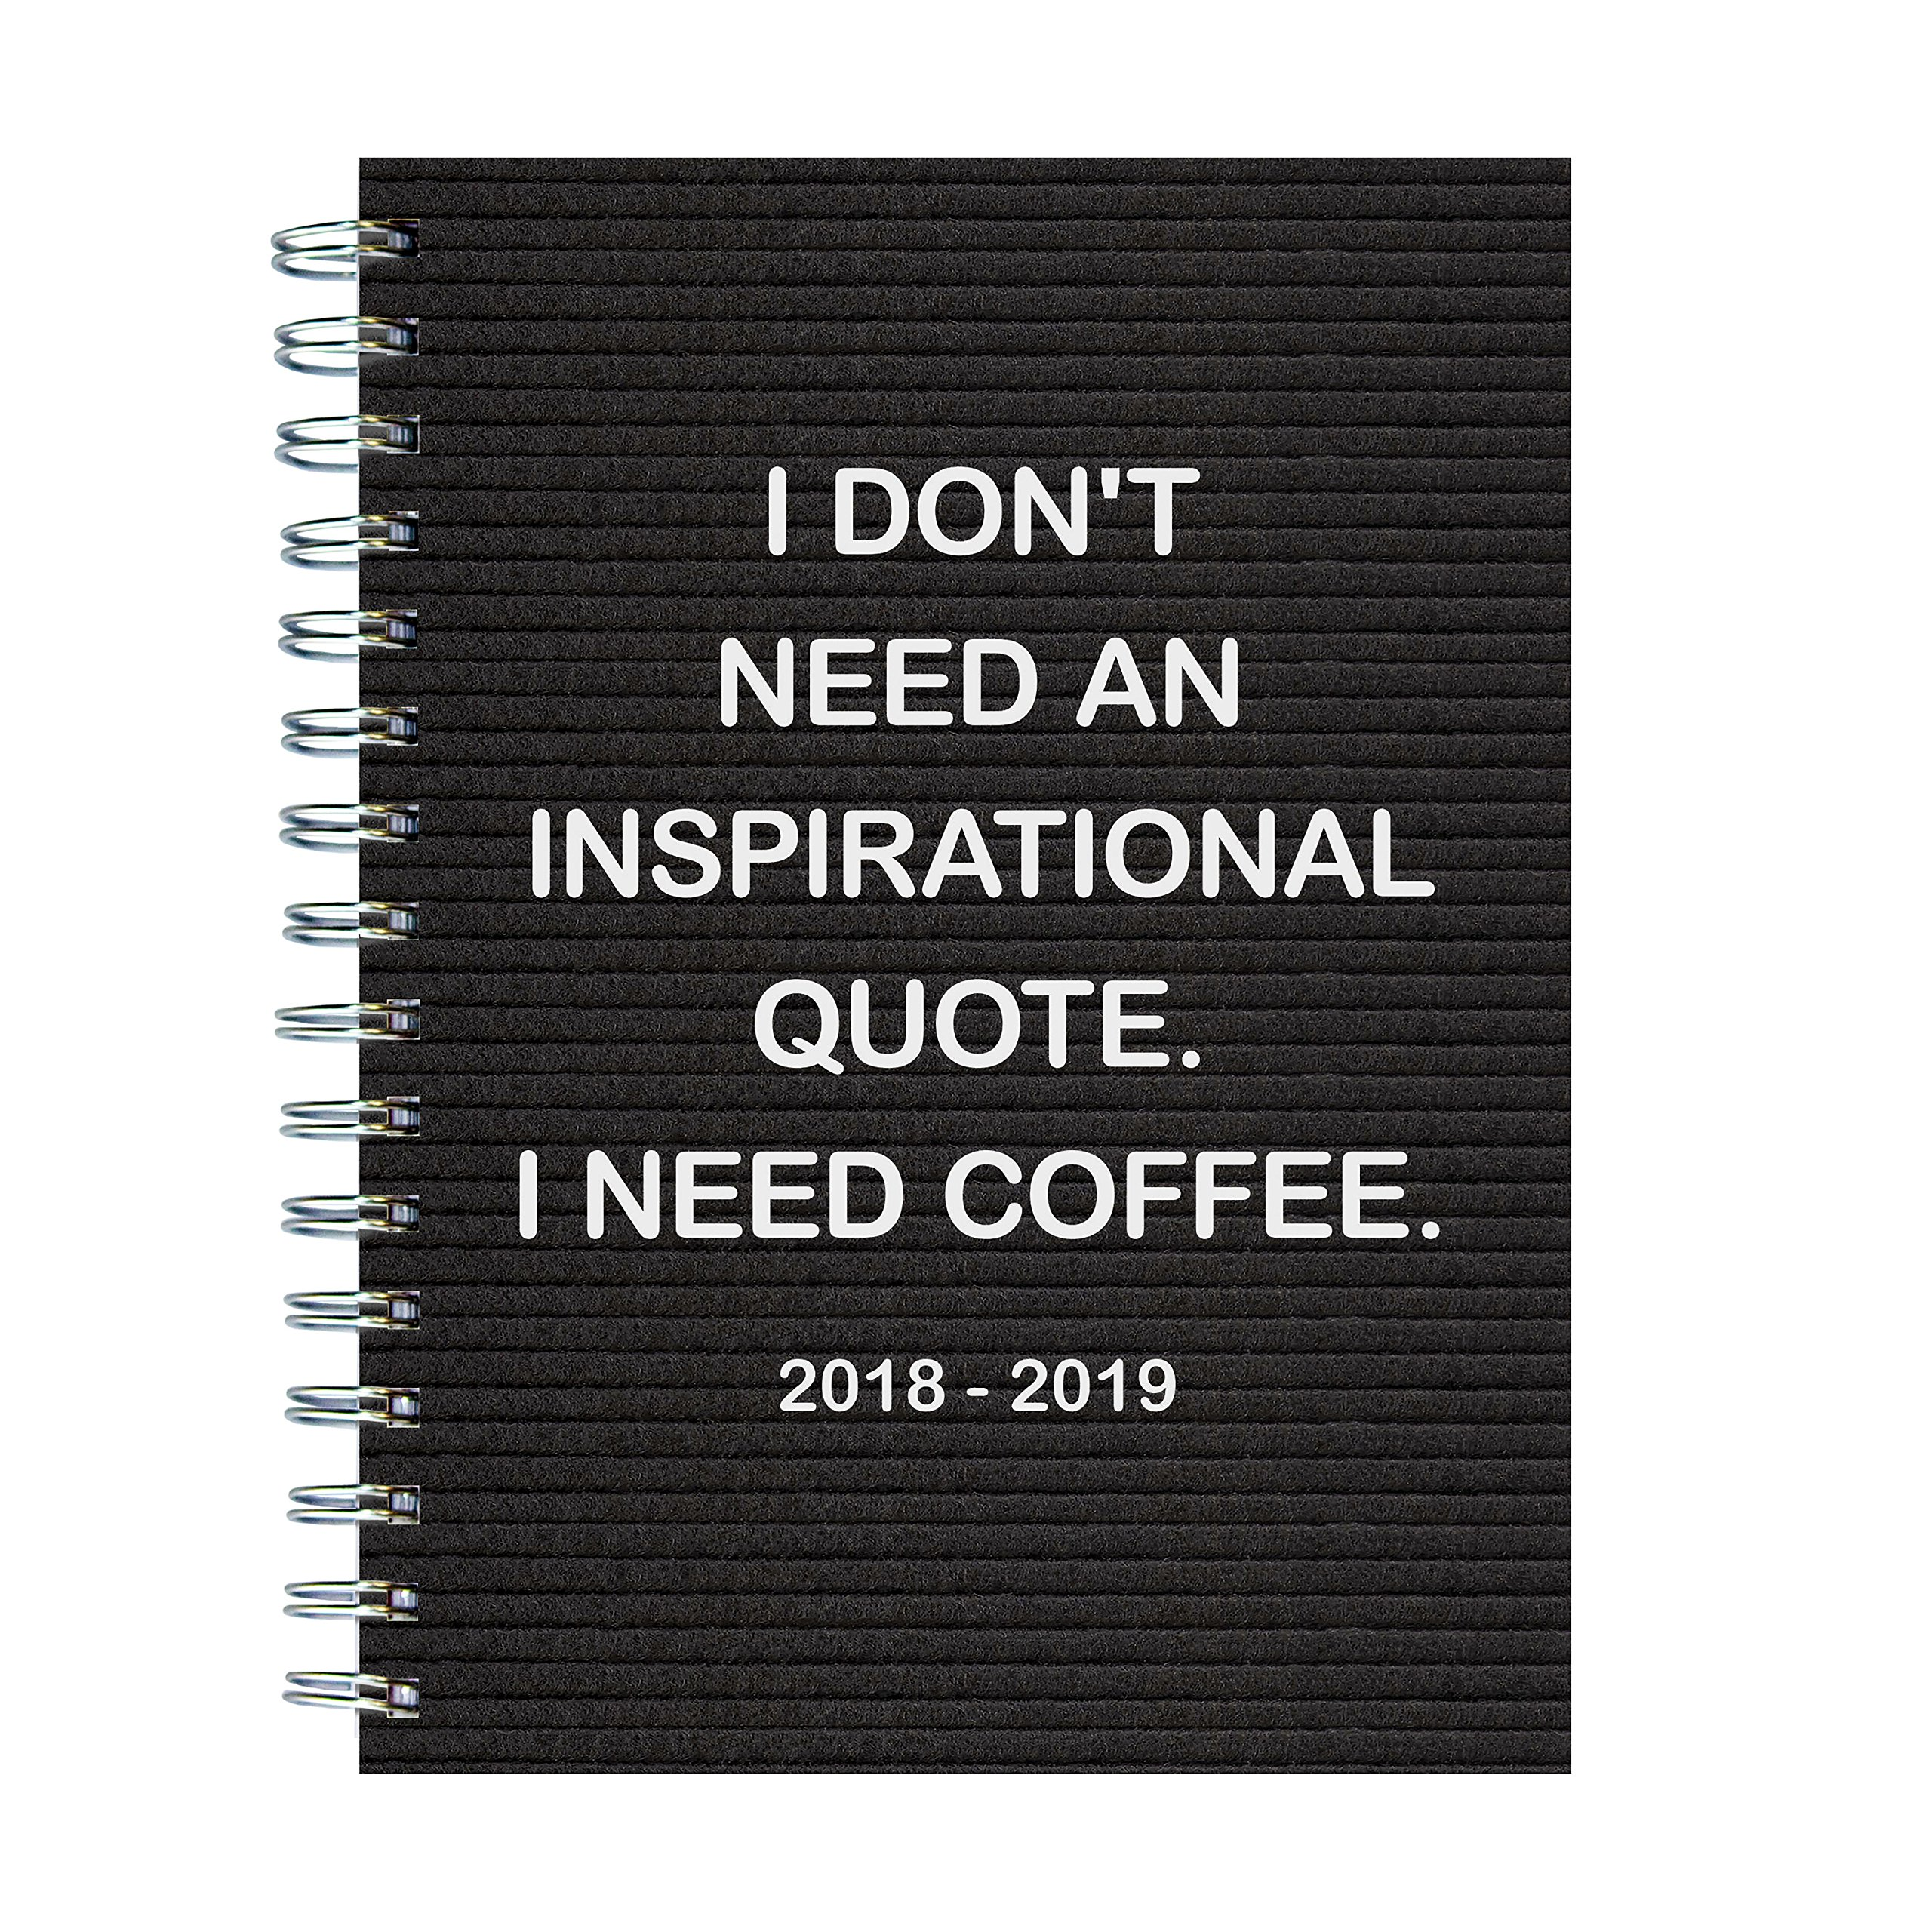 TF Publishing 19-9057A July 2018 - June 2019 Need Coffee Medium Weekly Monthly Planner, 6.5 x 8'', Black & White